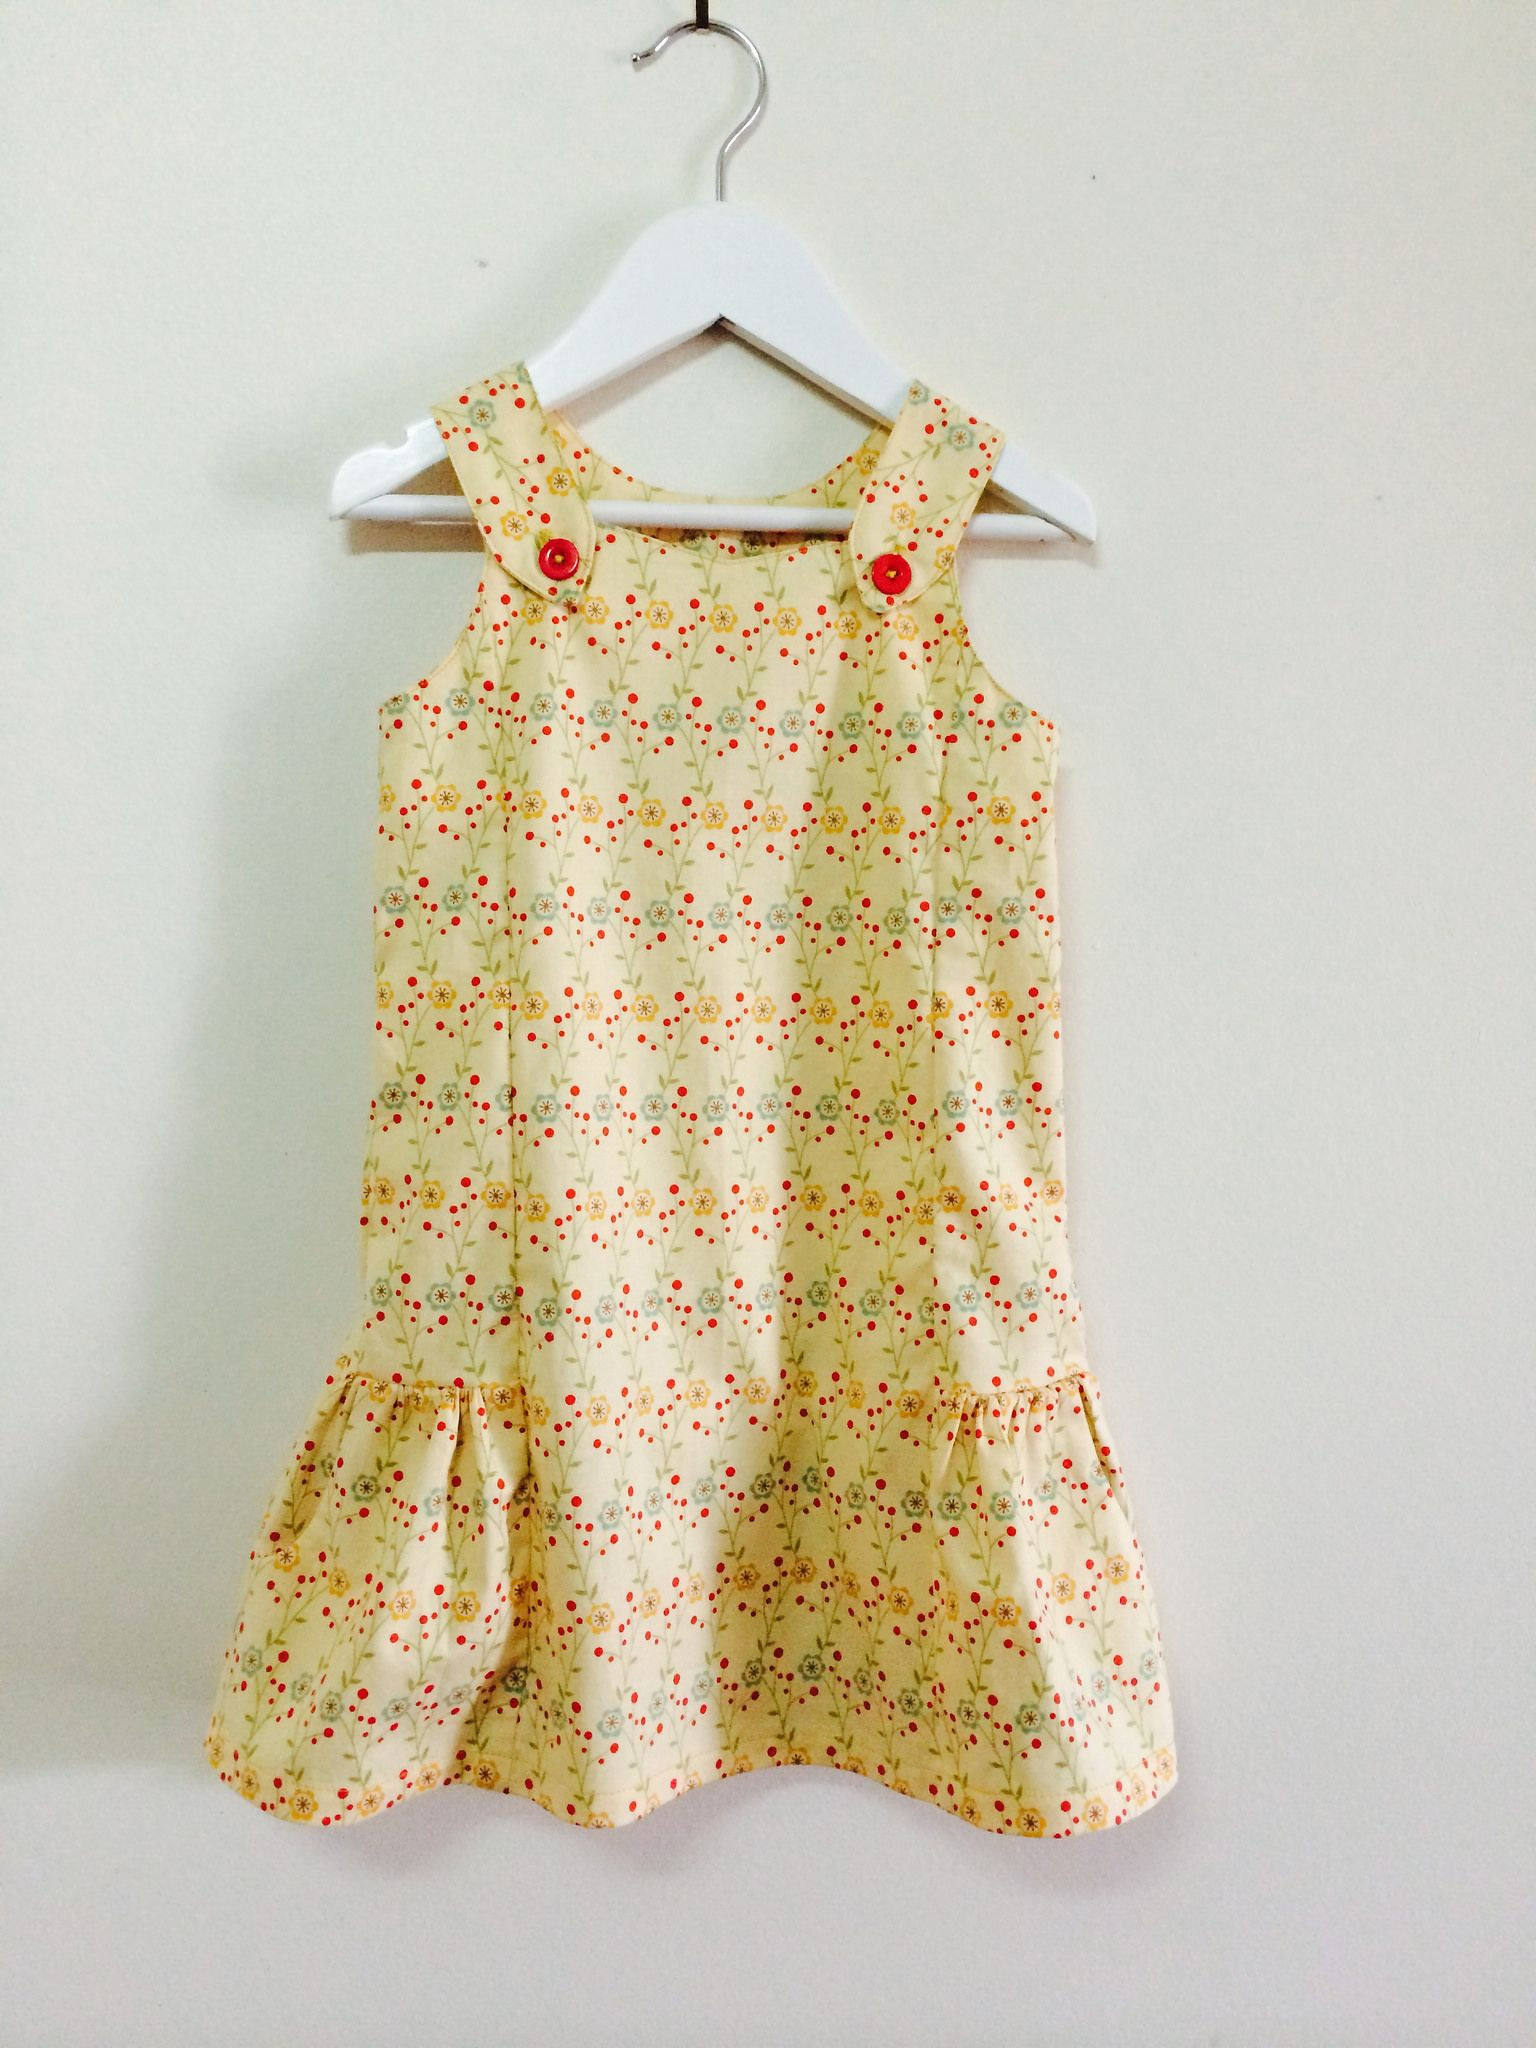 Seashore Sundress In Cosmo Cricket Early Bird Stashed 4 Yrs Roupas Roupas Infantil Infantil